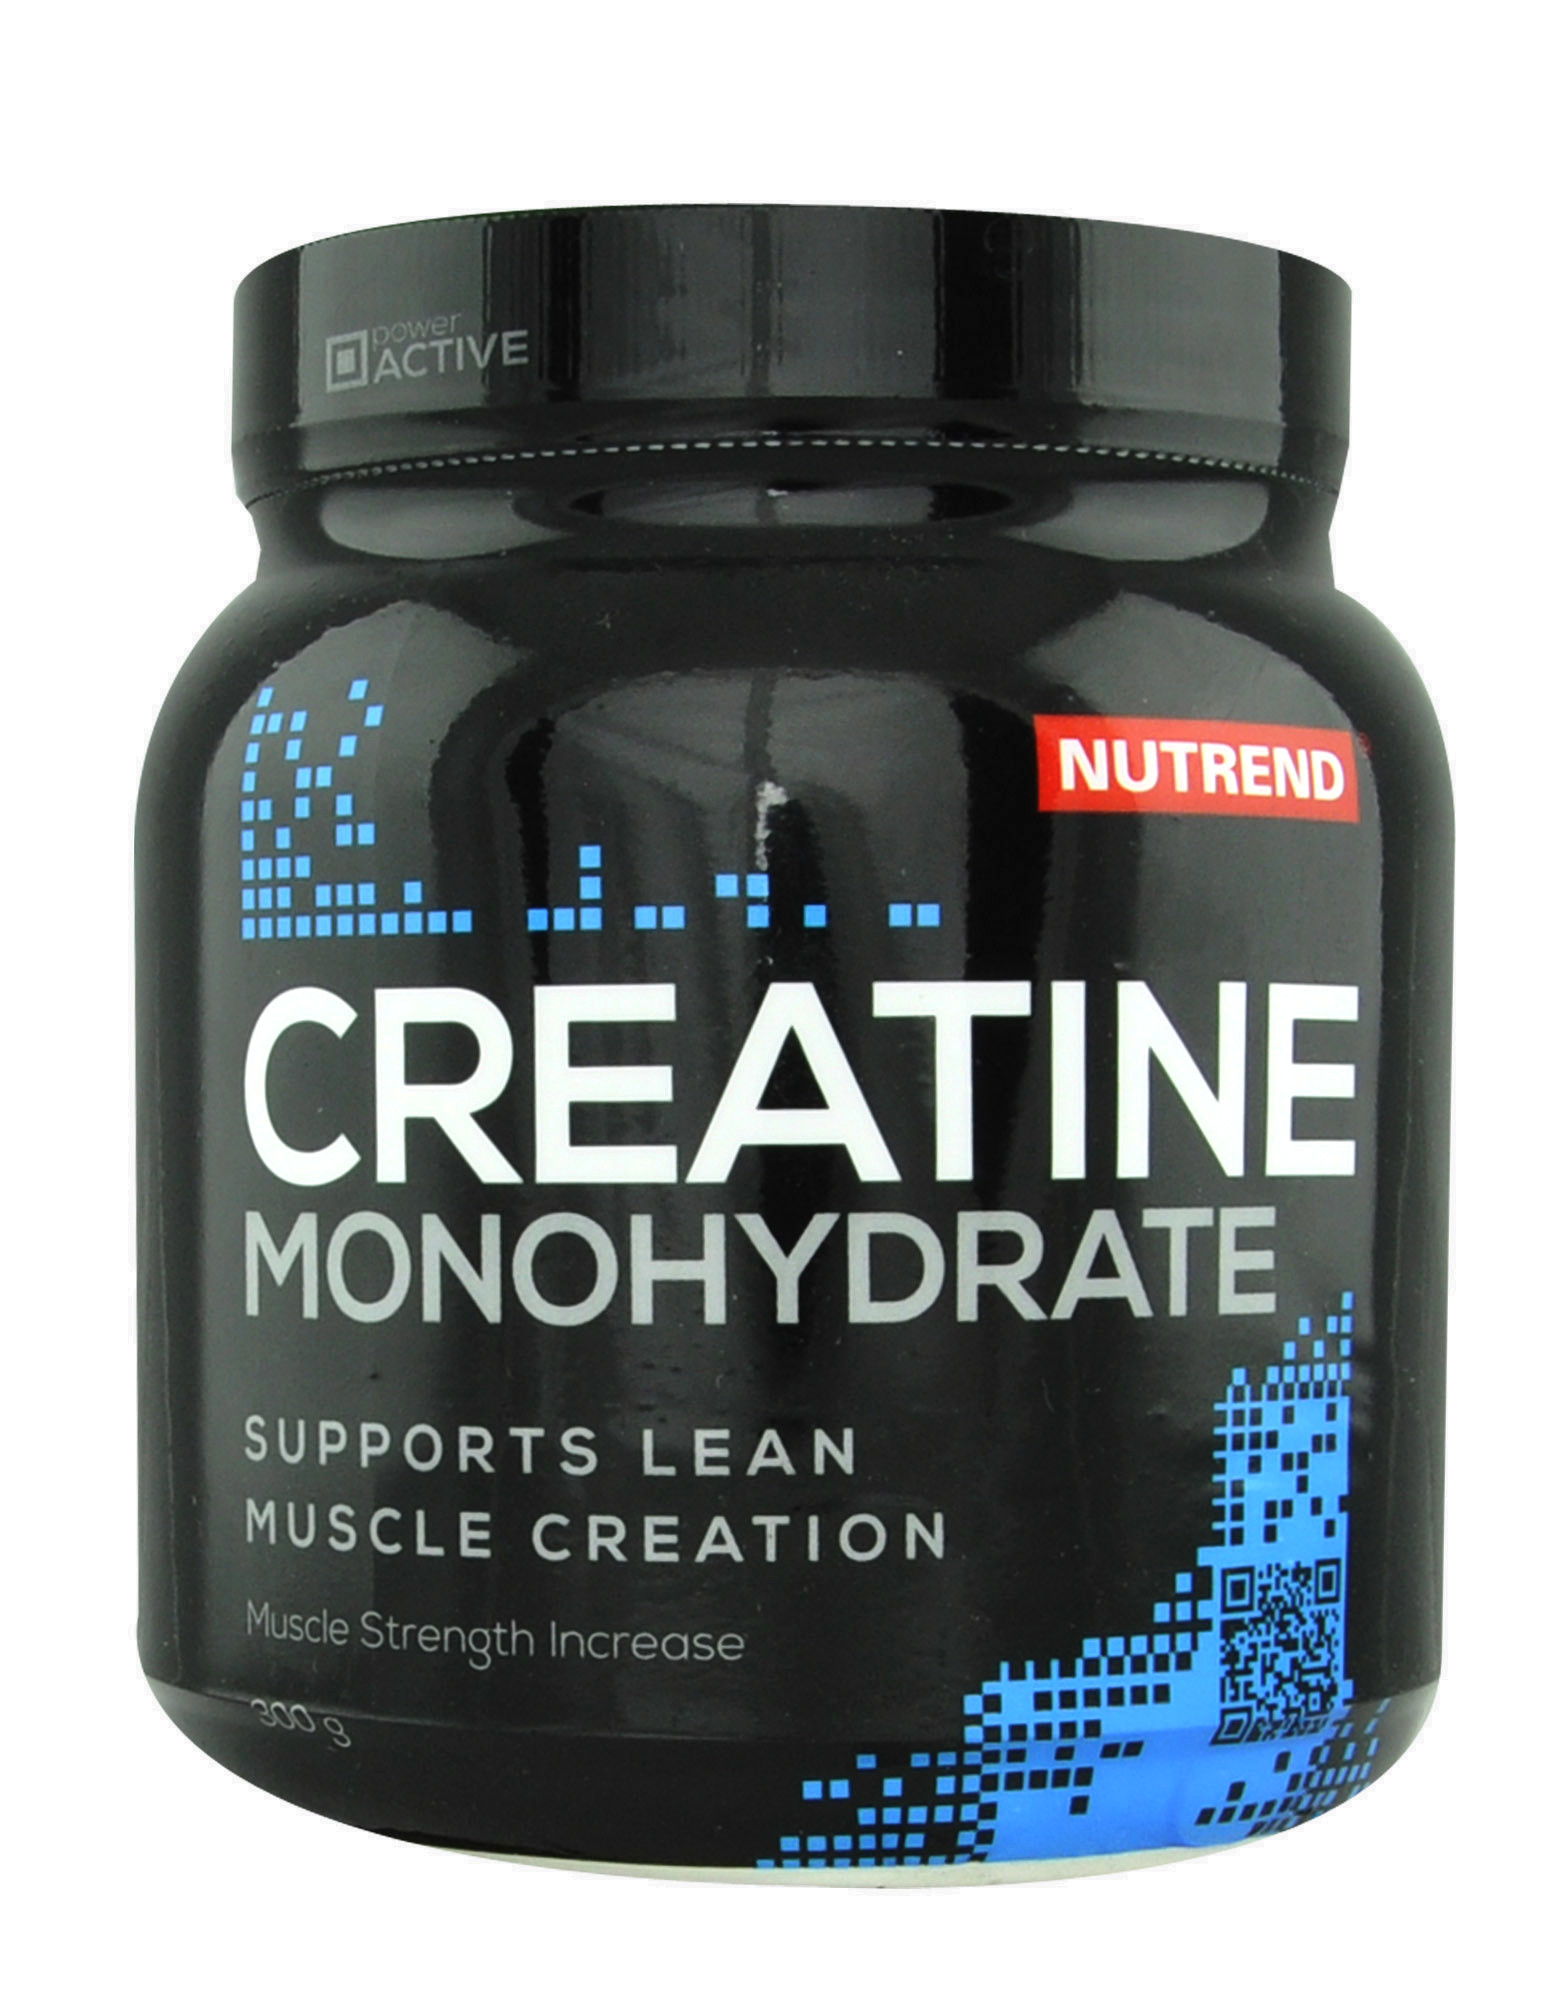 Creatine Monohydrate by NUTREND (300 grams)